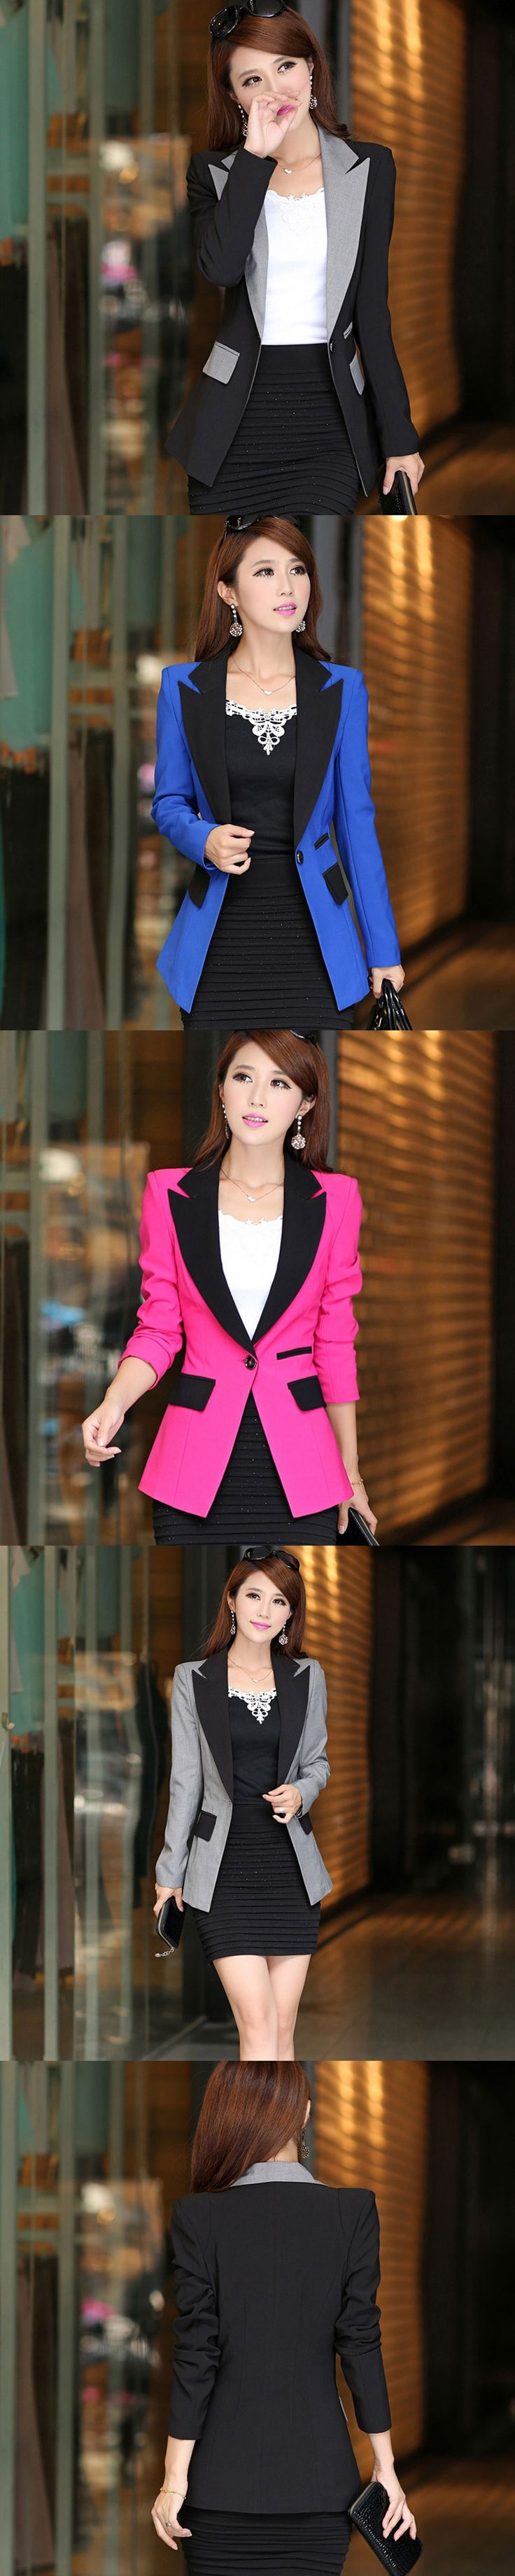 Blazer Jacket Women Suit Office Ladies 2017 Vogue Refresh Blazers Mujer Jaqueta Feminina Outwear manga longa Slim fit Winter